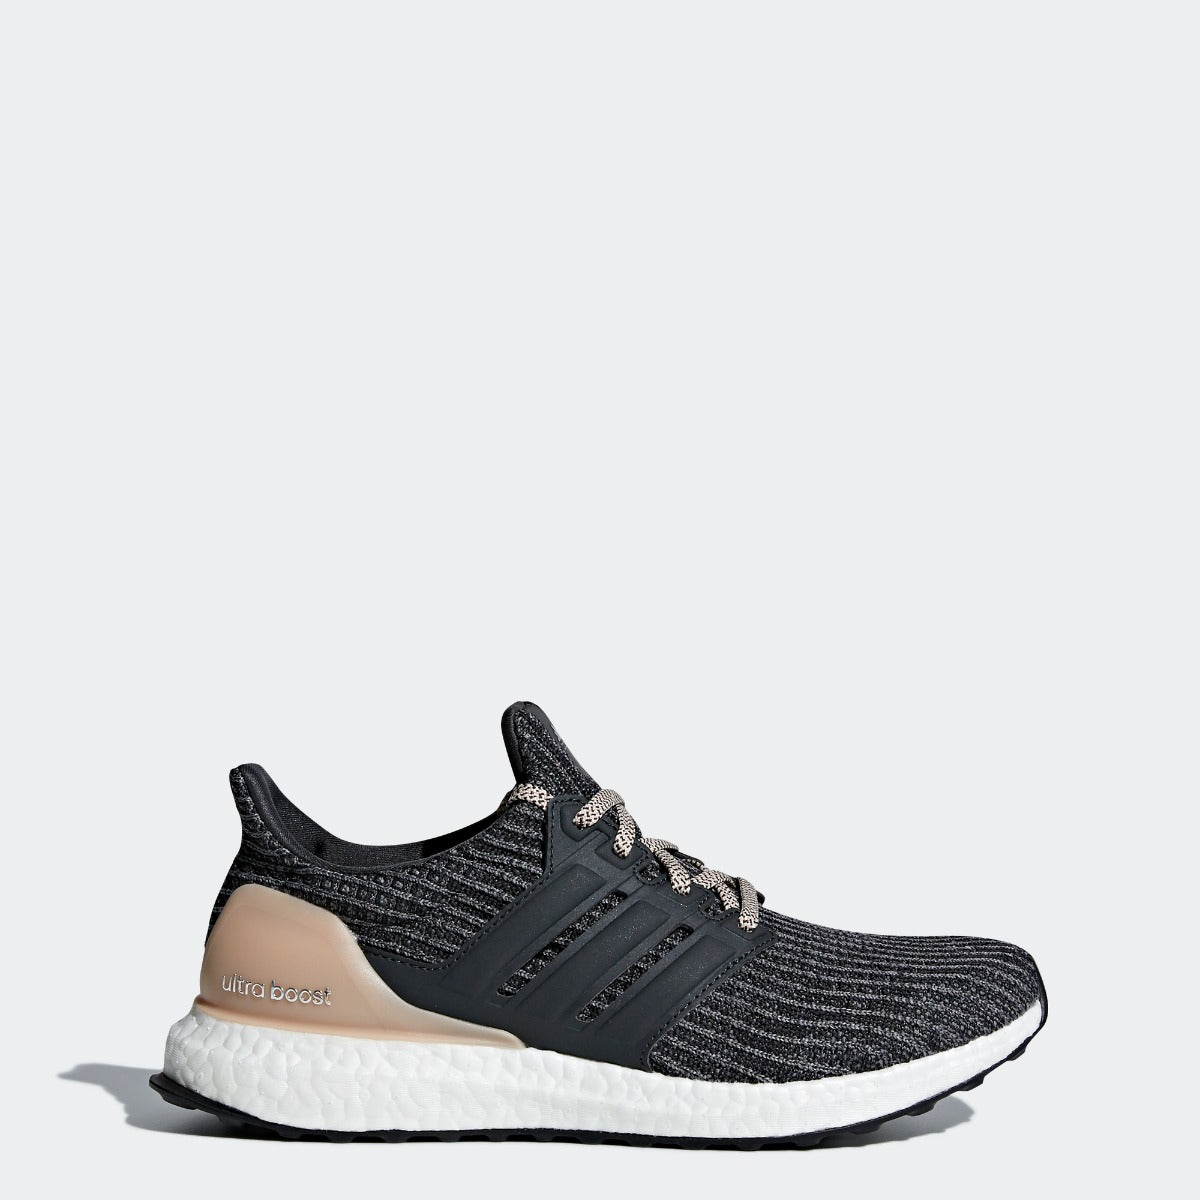 44ff4776a Women s Adidas Running Ultraboost Shoes Gray Carbon and Ash Pearl ...